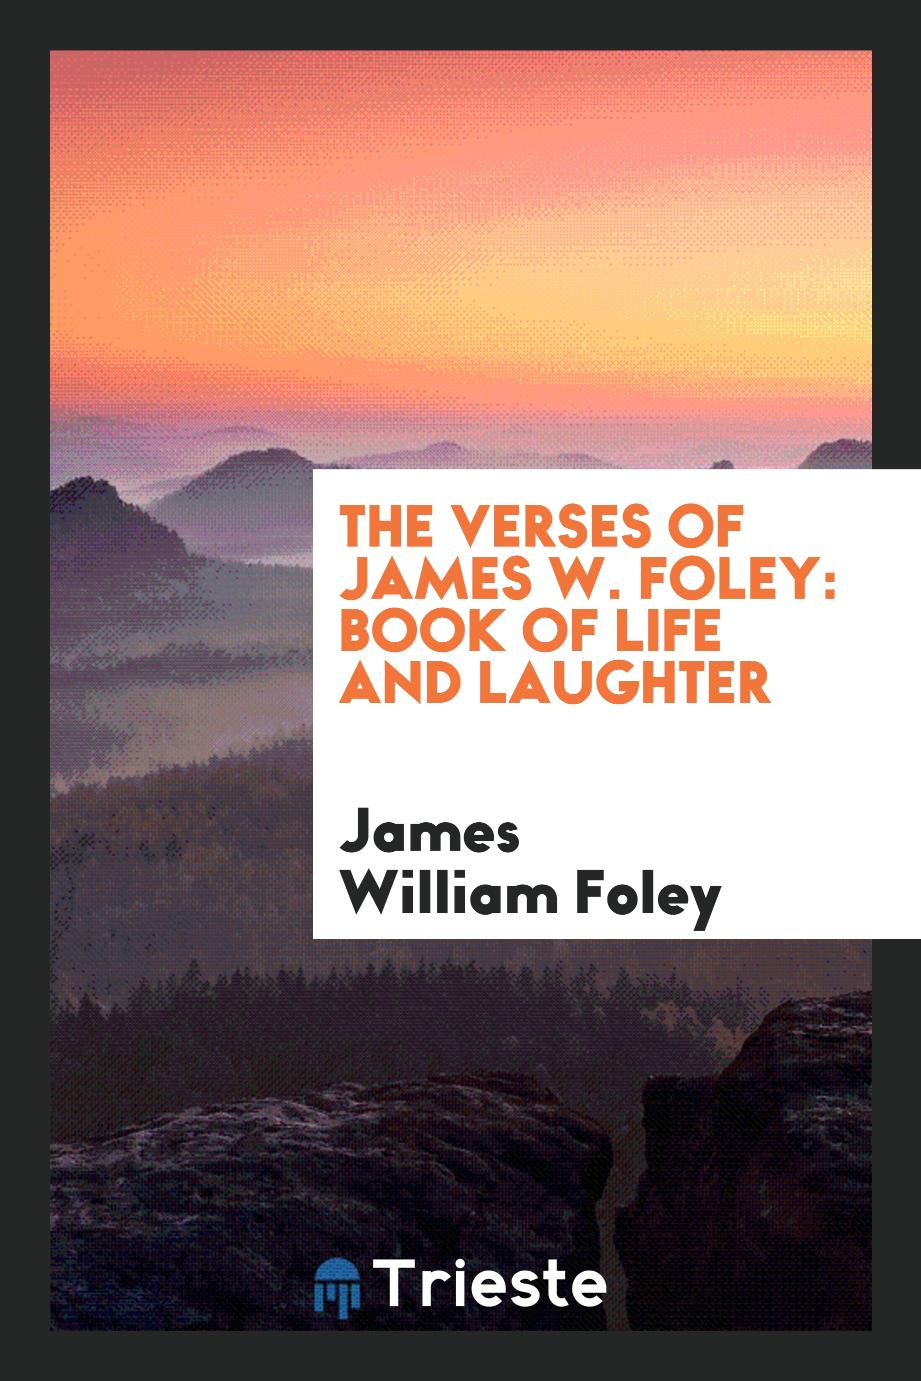 The verses of James W. Foley: book of life and laughter